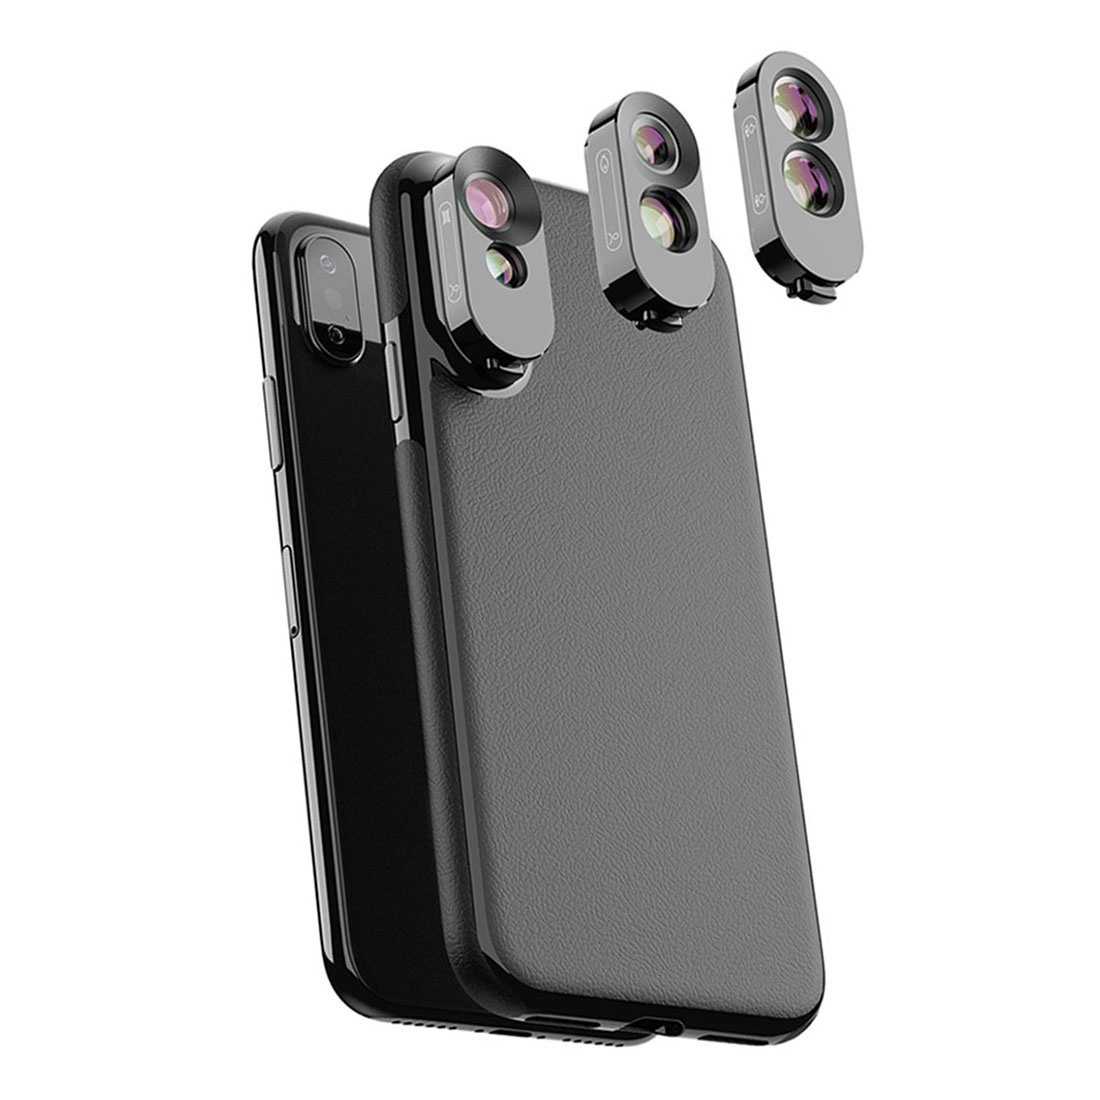 Mobile Phone Lens Wide Angle Lens Telephoto And Fish Eye Lens Professional Camera Photography Lens Kit Case for iPhone X/XSMobile Phone Lens Wide Angle Lens Telephoto And Fish Eye Lens Professional Camera Photography Lens Kit Case for iPhone X/XS